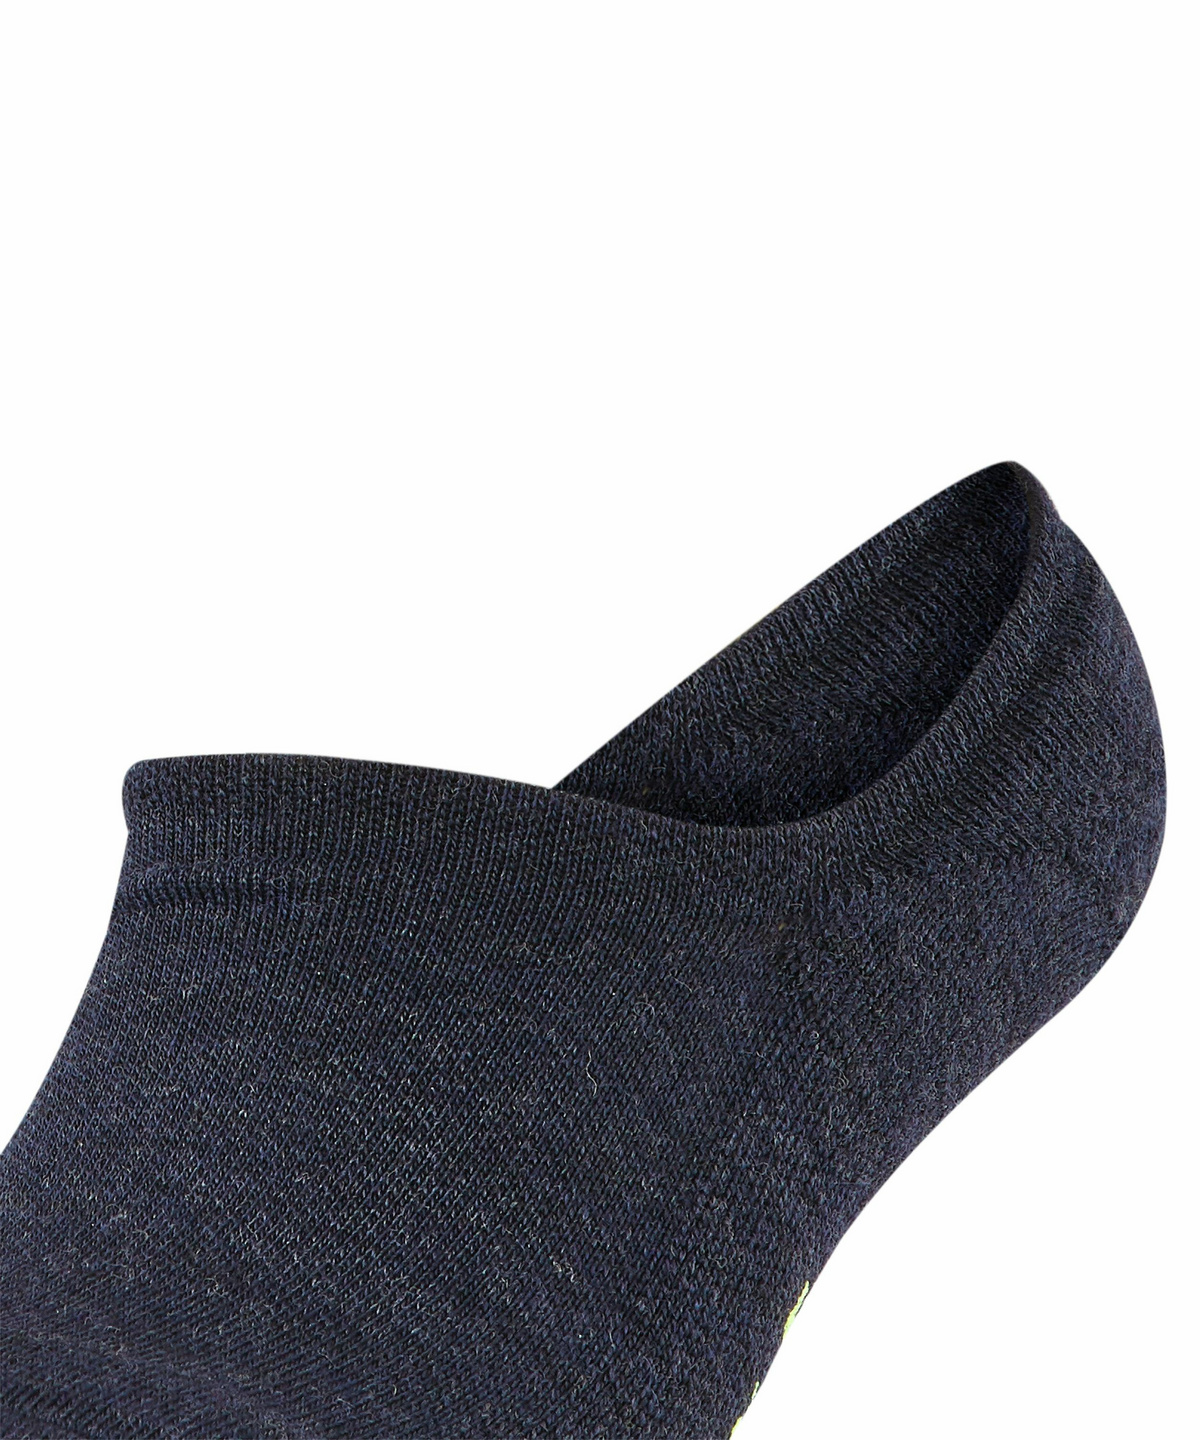 Falke Keep Warm Calzini Casual Unisex-Adulto